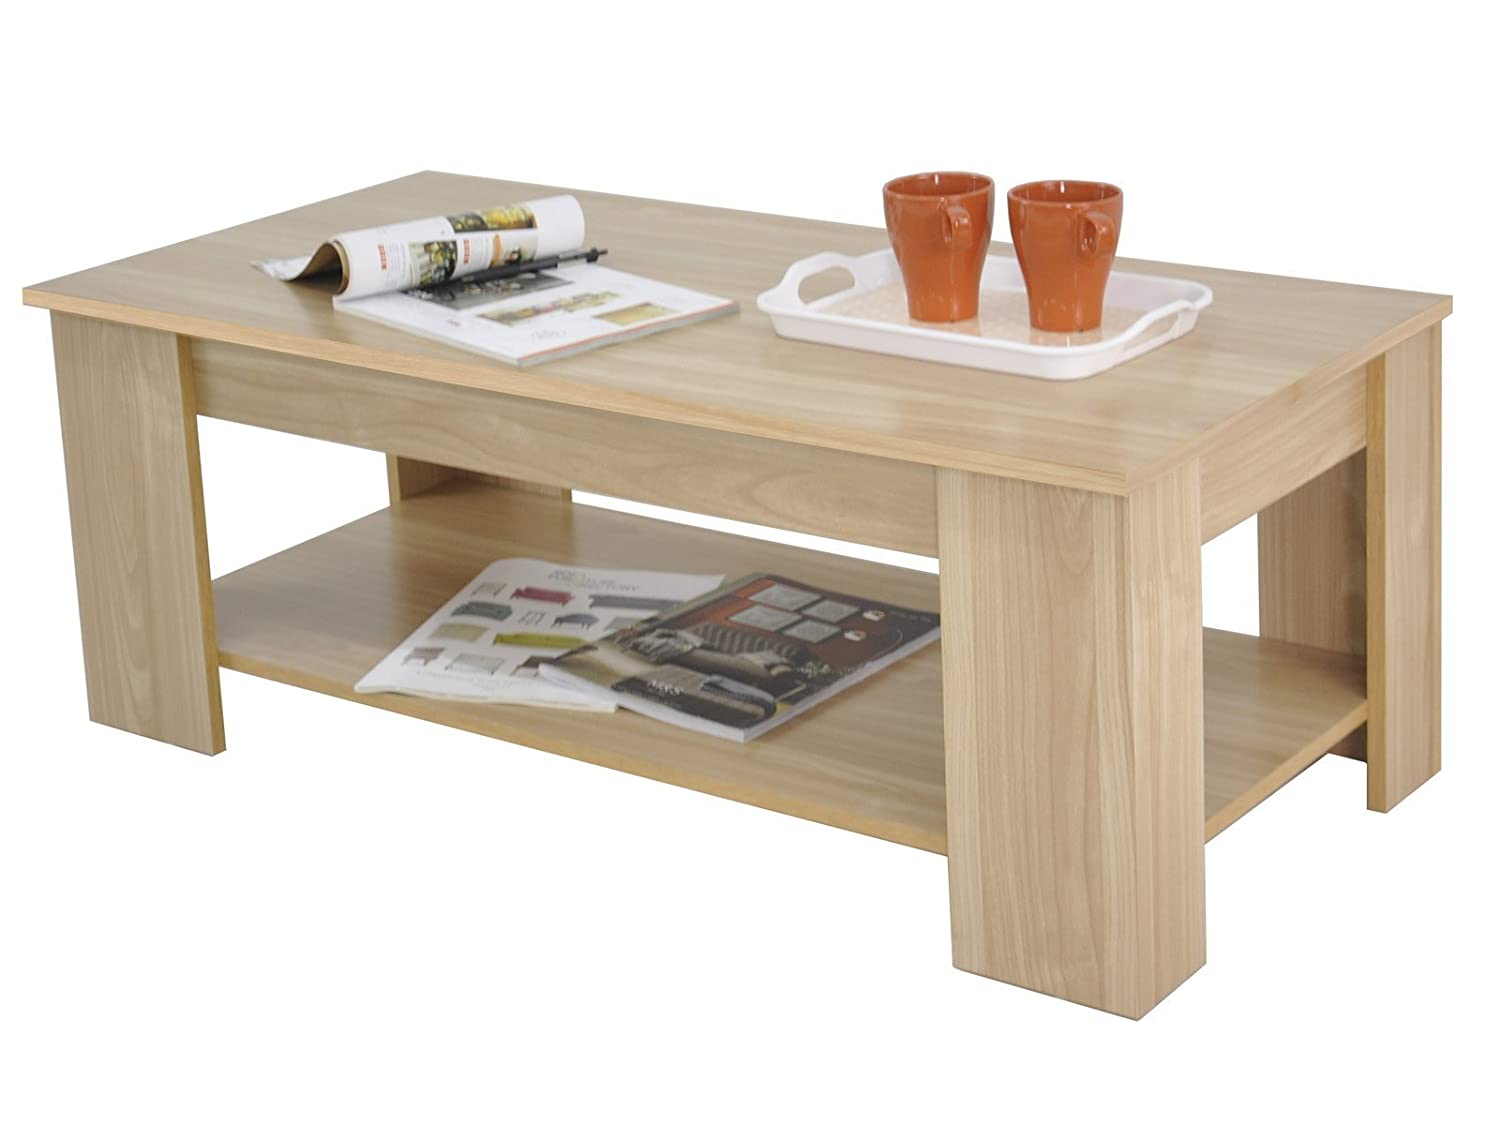 lift top coffee table with storage. Right Deals UK Kimberly Lift Up Top Coffee Table Storage \u0026 Shelf - Choice Colour (Walnut): Amazon.co.uk: Kitchen Home With M